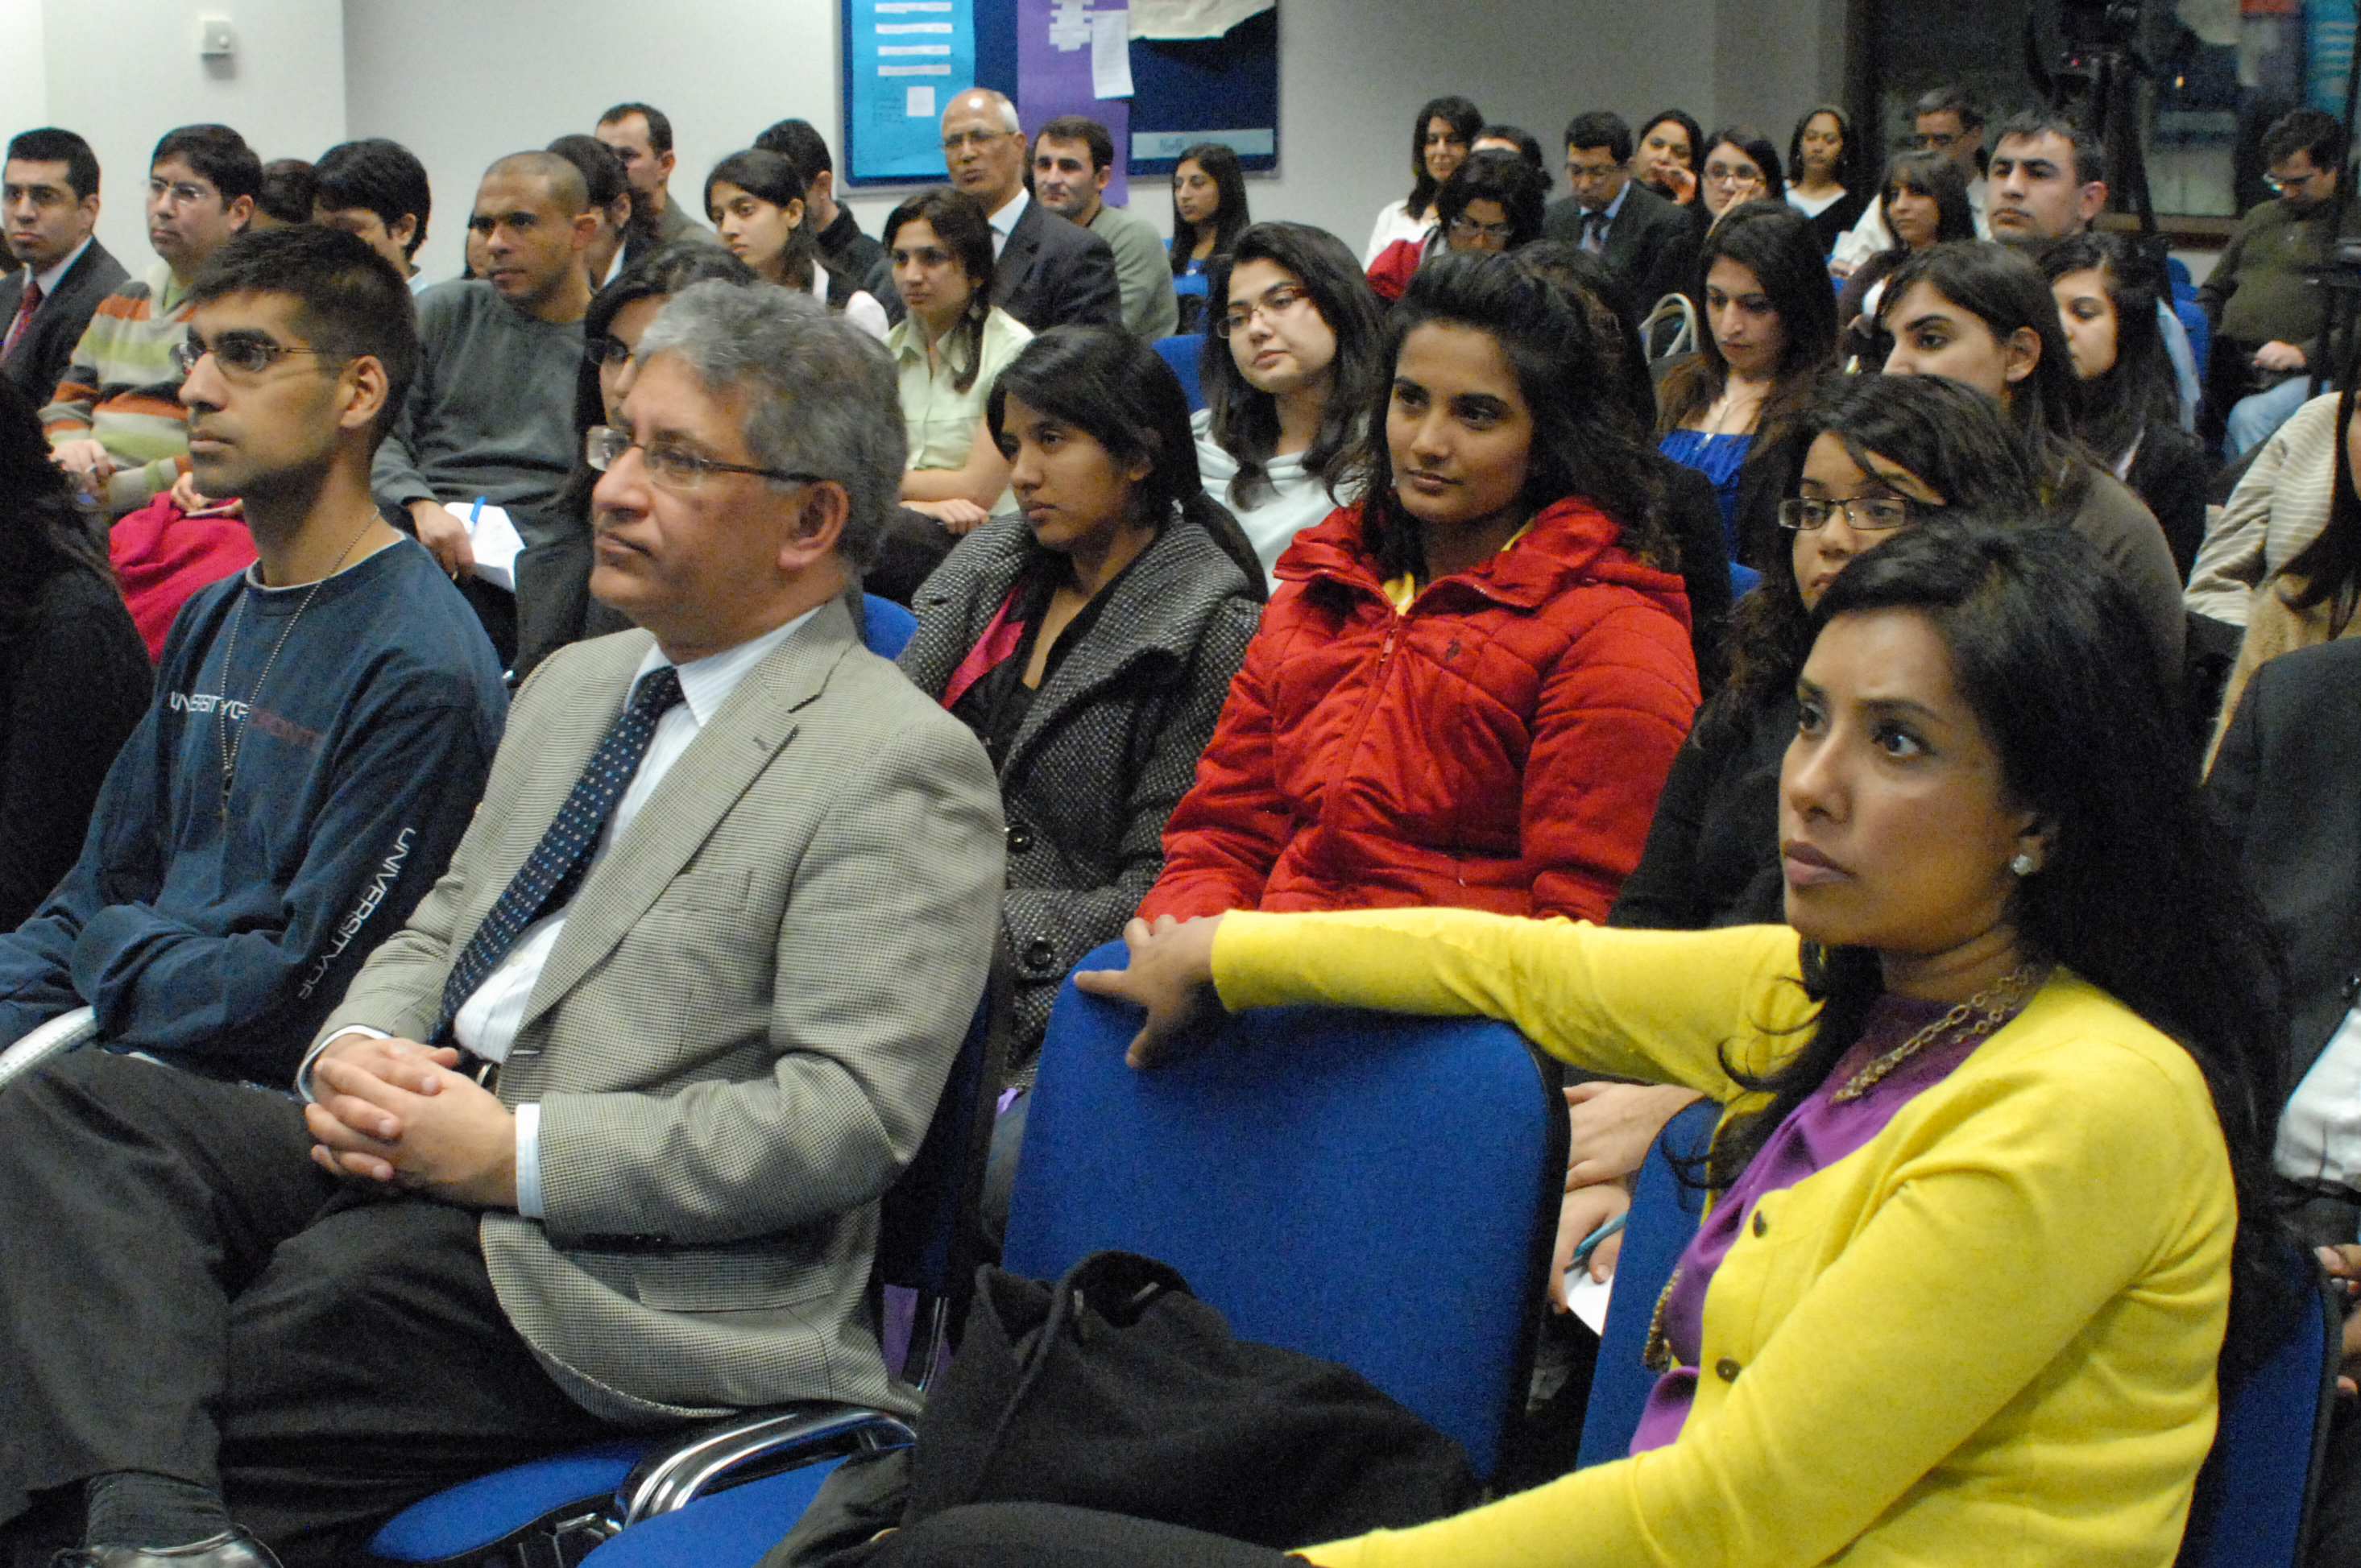 An eager audience gathered at The Institute of Ismaili Studies in December 2009, to hear Eboo Patel speak about religious pluralism and interfaith engagement. Photo: Courtesy of The Institute of Ismaili Studies